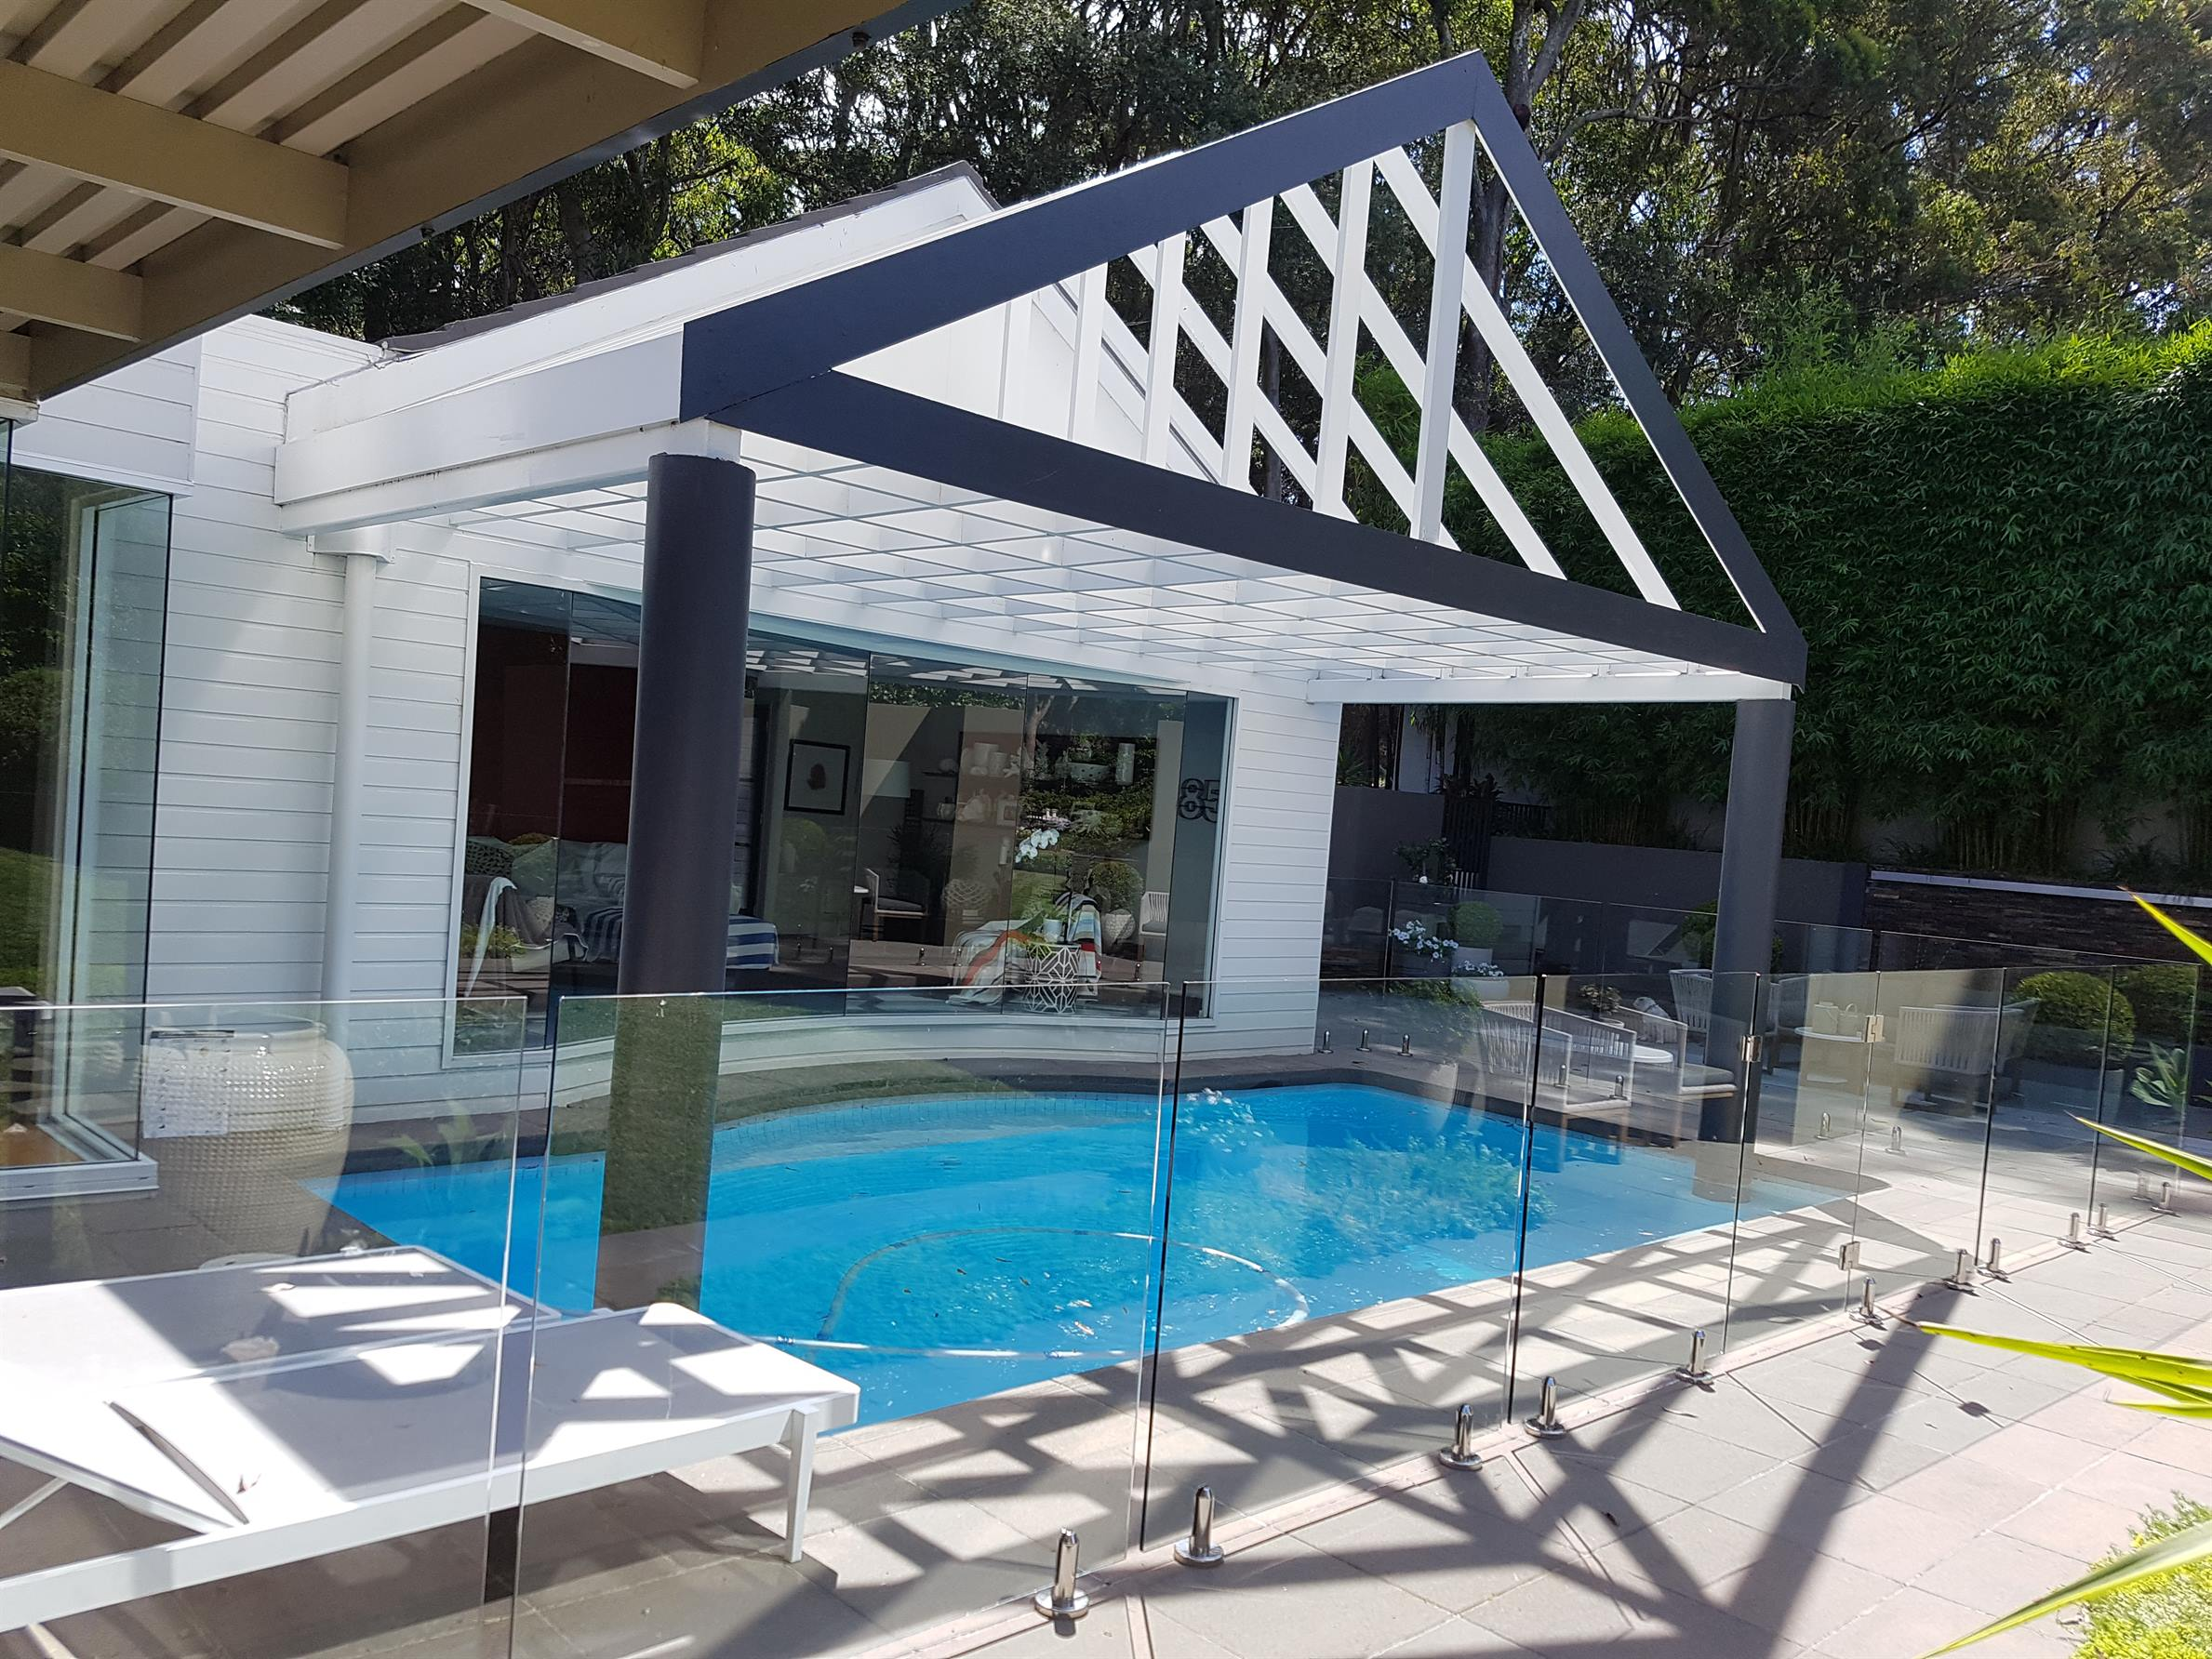 7 Tips For Homeowners To Improve Their Property With Glass Pool Fencing & Balustrades